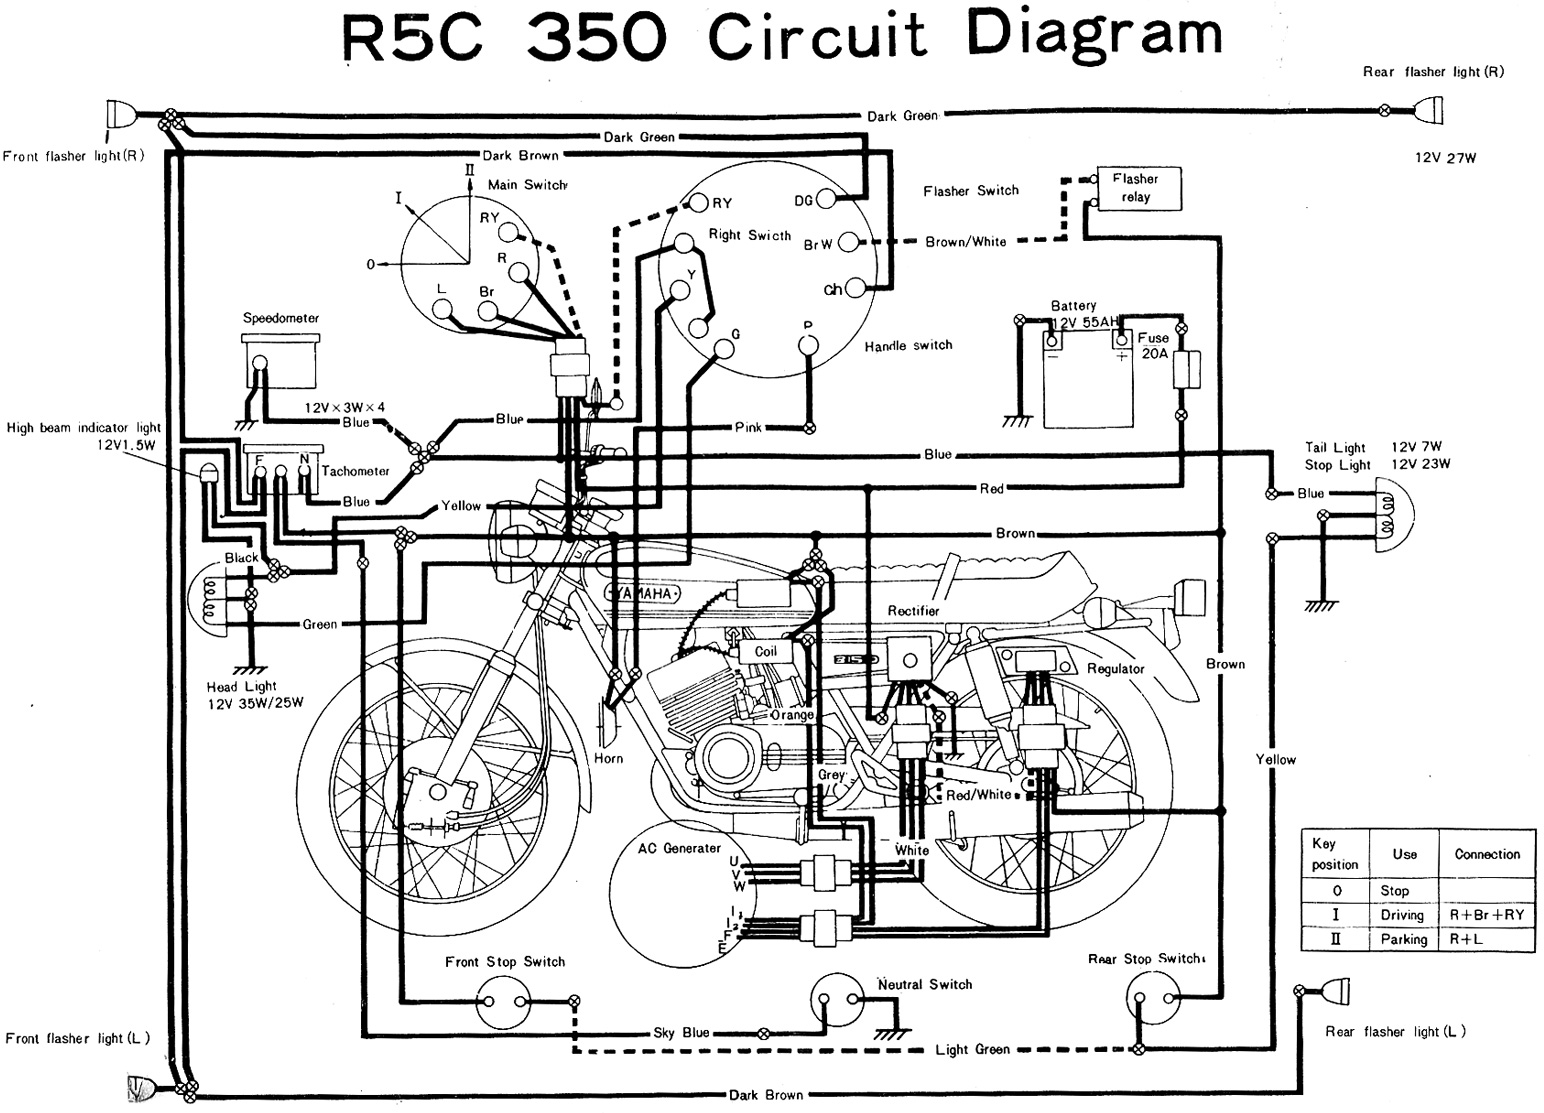 Yamaha Rd350 R5c Wiring Diagram Evan Fell Motorcycle Works Yamaha Warrior  Ignition Diagram Yamaha Ignition Diagram